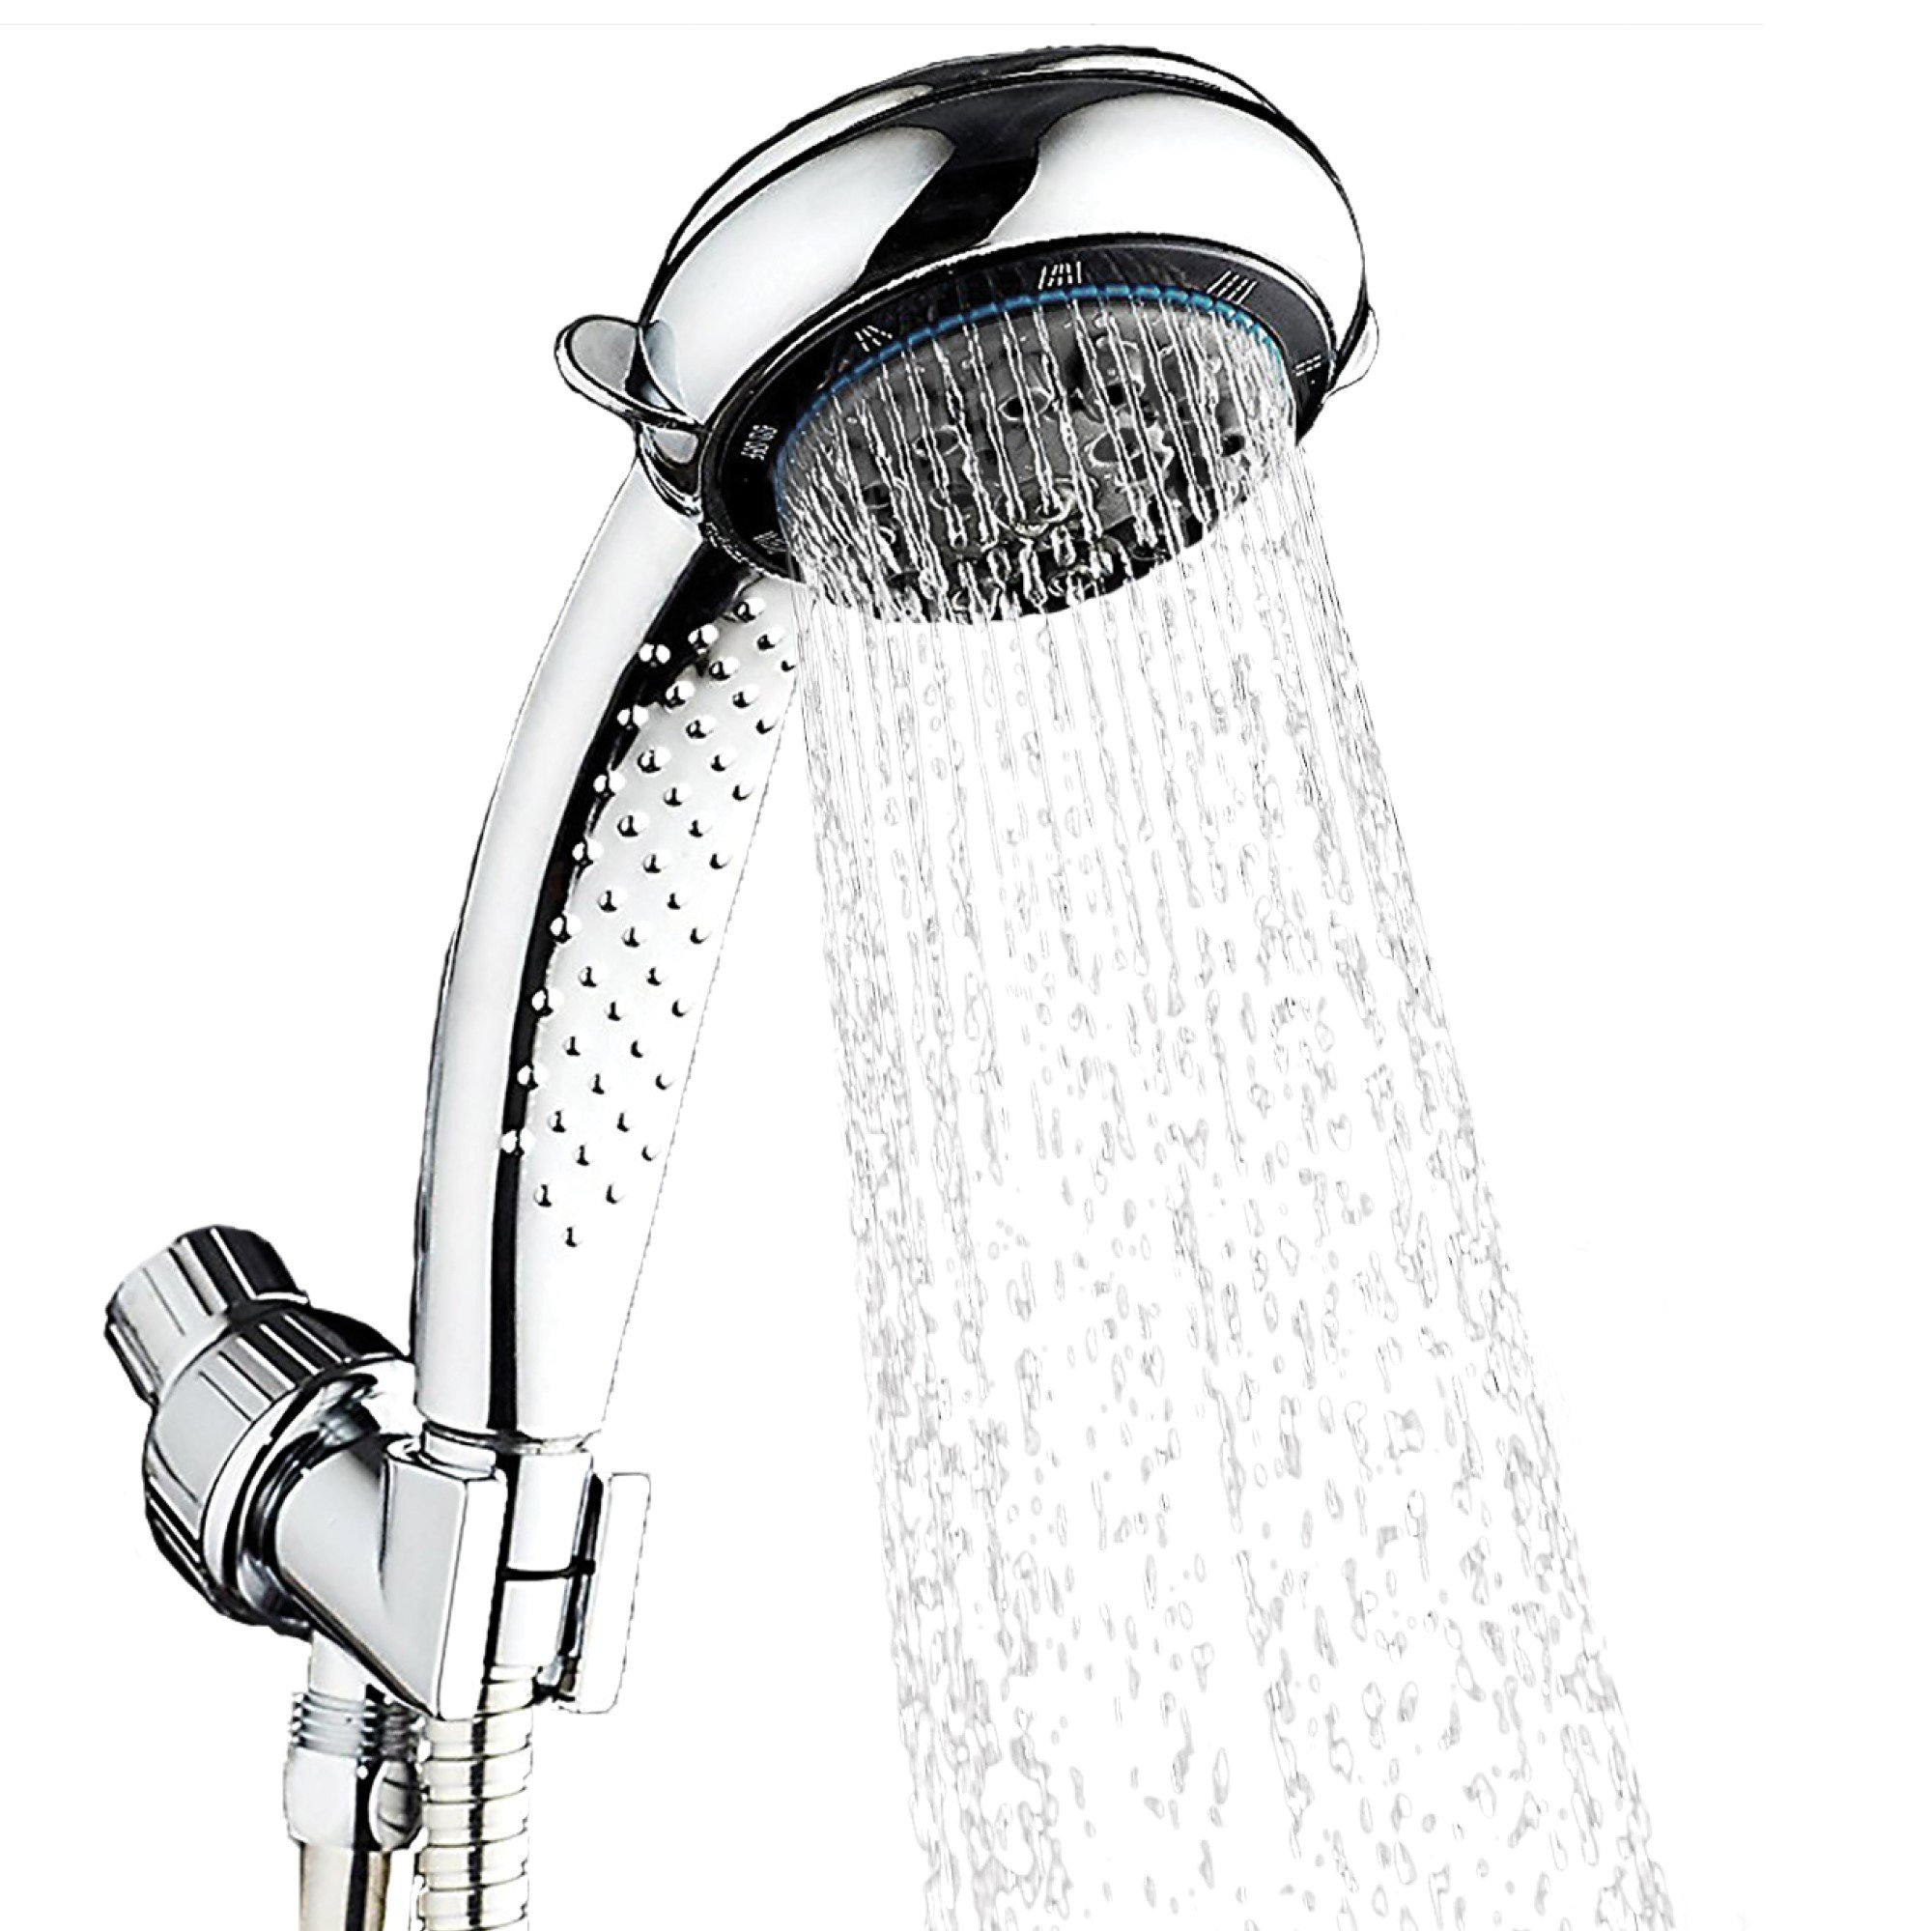 Handheld Shower Head with 8 Lavish Spray Settings from Power Massage to Water Saving Mode; Adjustable Shower Arm Mount, Hose and Sealant Tape Included